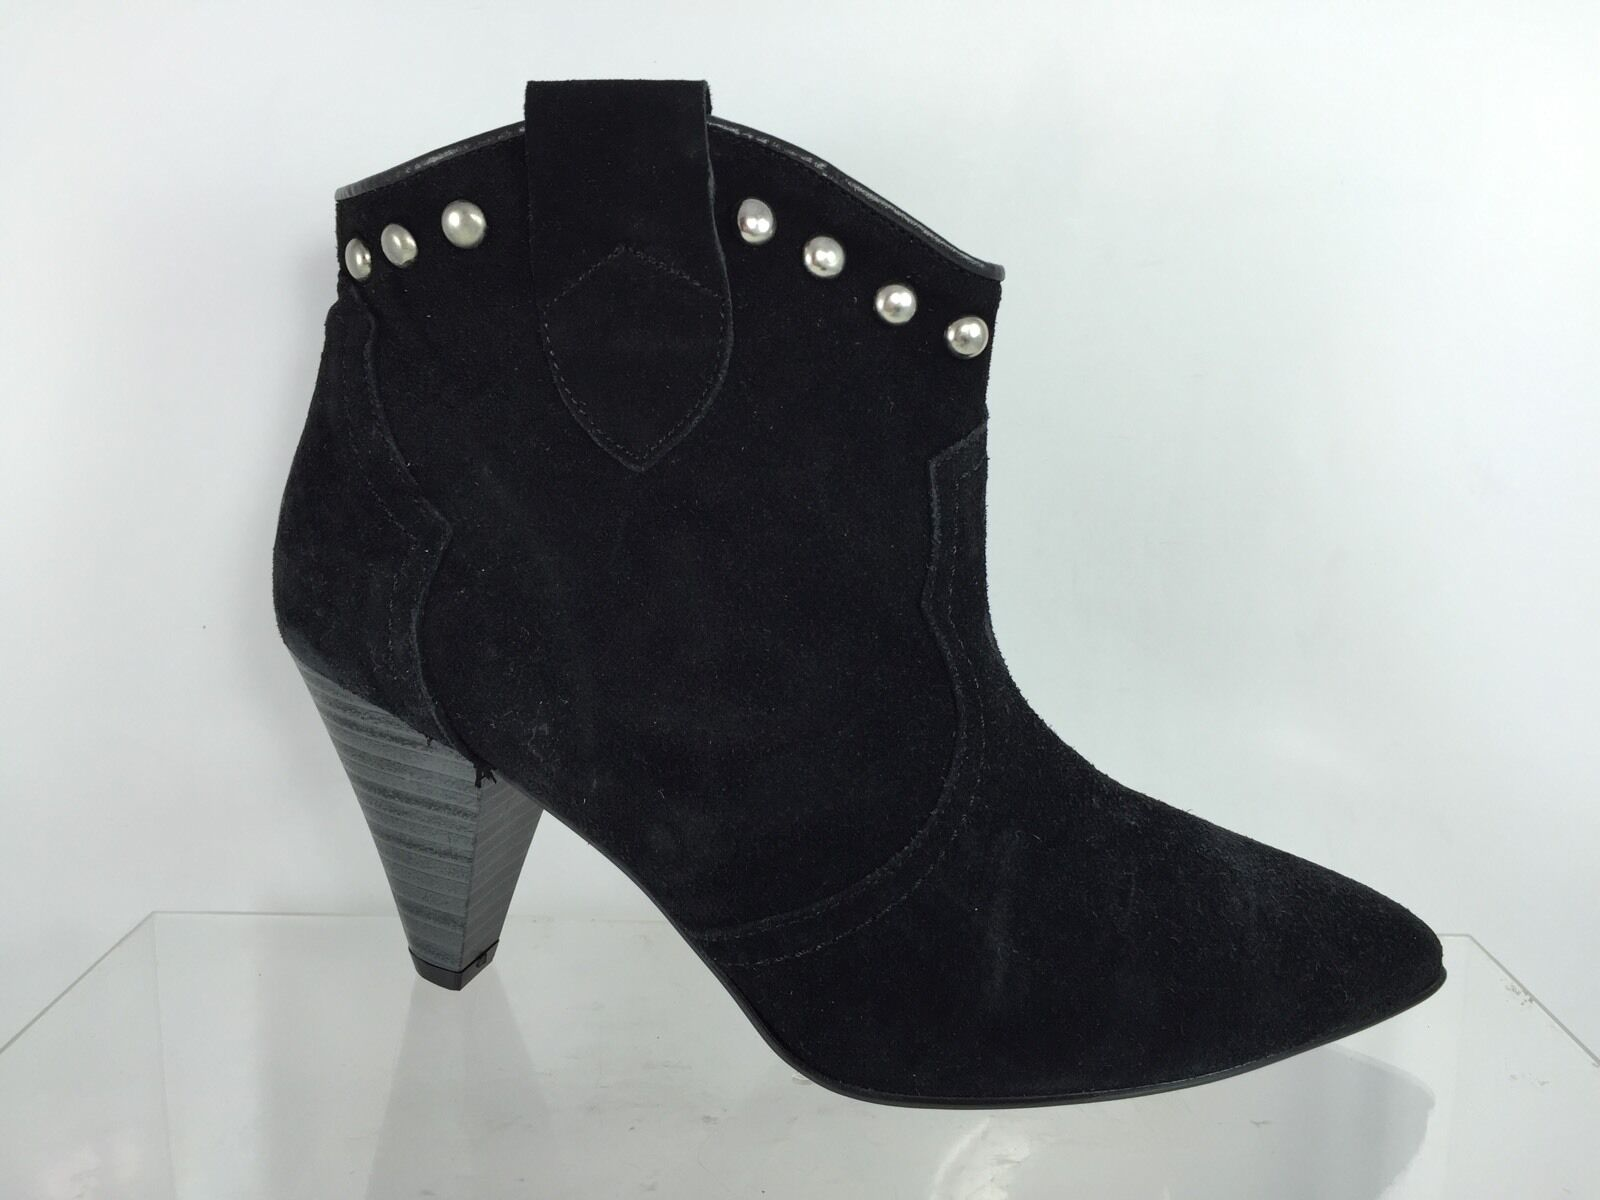 Charles David Womens Black Leather/Suede Ankle Boots 39.5